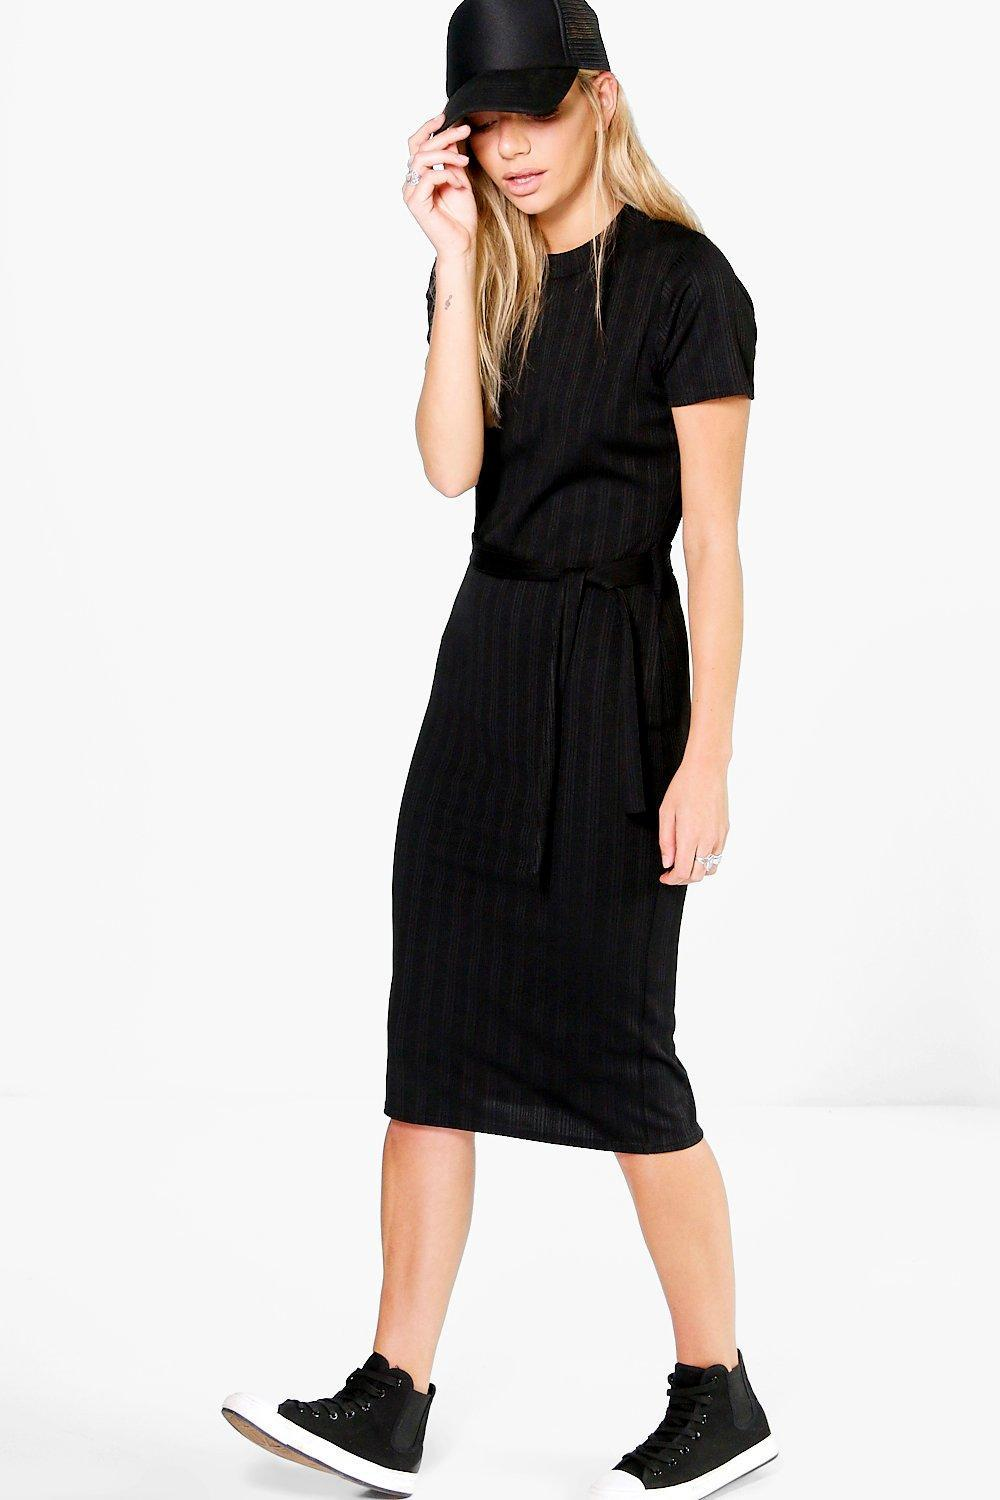 Rib Tie Waist Midi Dress Black - length: below the knee; fit: tight; pattern: plain; style: bodycon; predominant colour: black; occasions: evening; fibres: polyester/polyamide - stretch; neckline: crew; sleeve length: short sleeve; sleeve style: standard; texture group: jersey - clingy; pattern type: fabric; season: a/w 2016